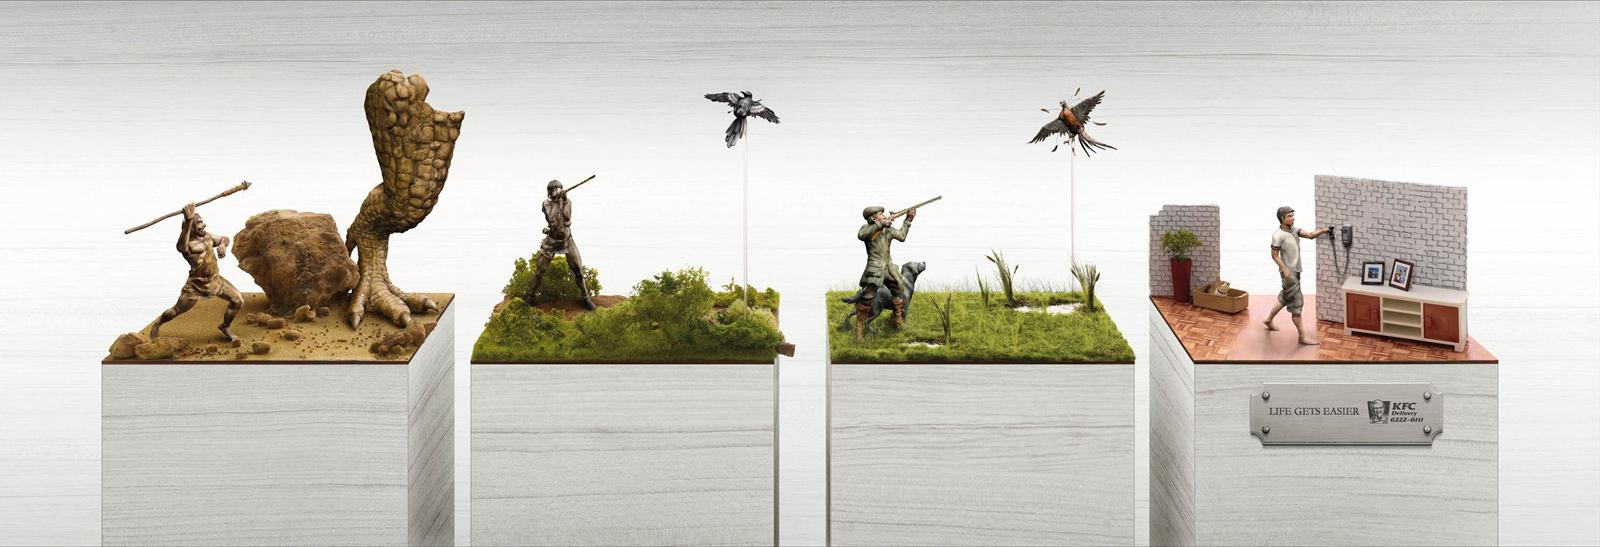 KFC Outdoor Ad -  Life Gets Easier, Hunting